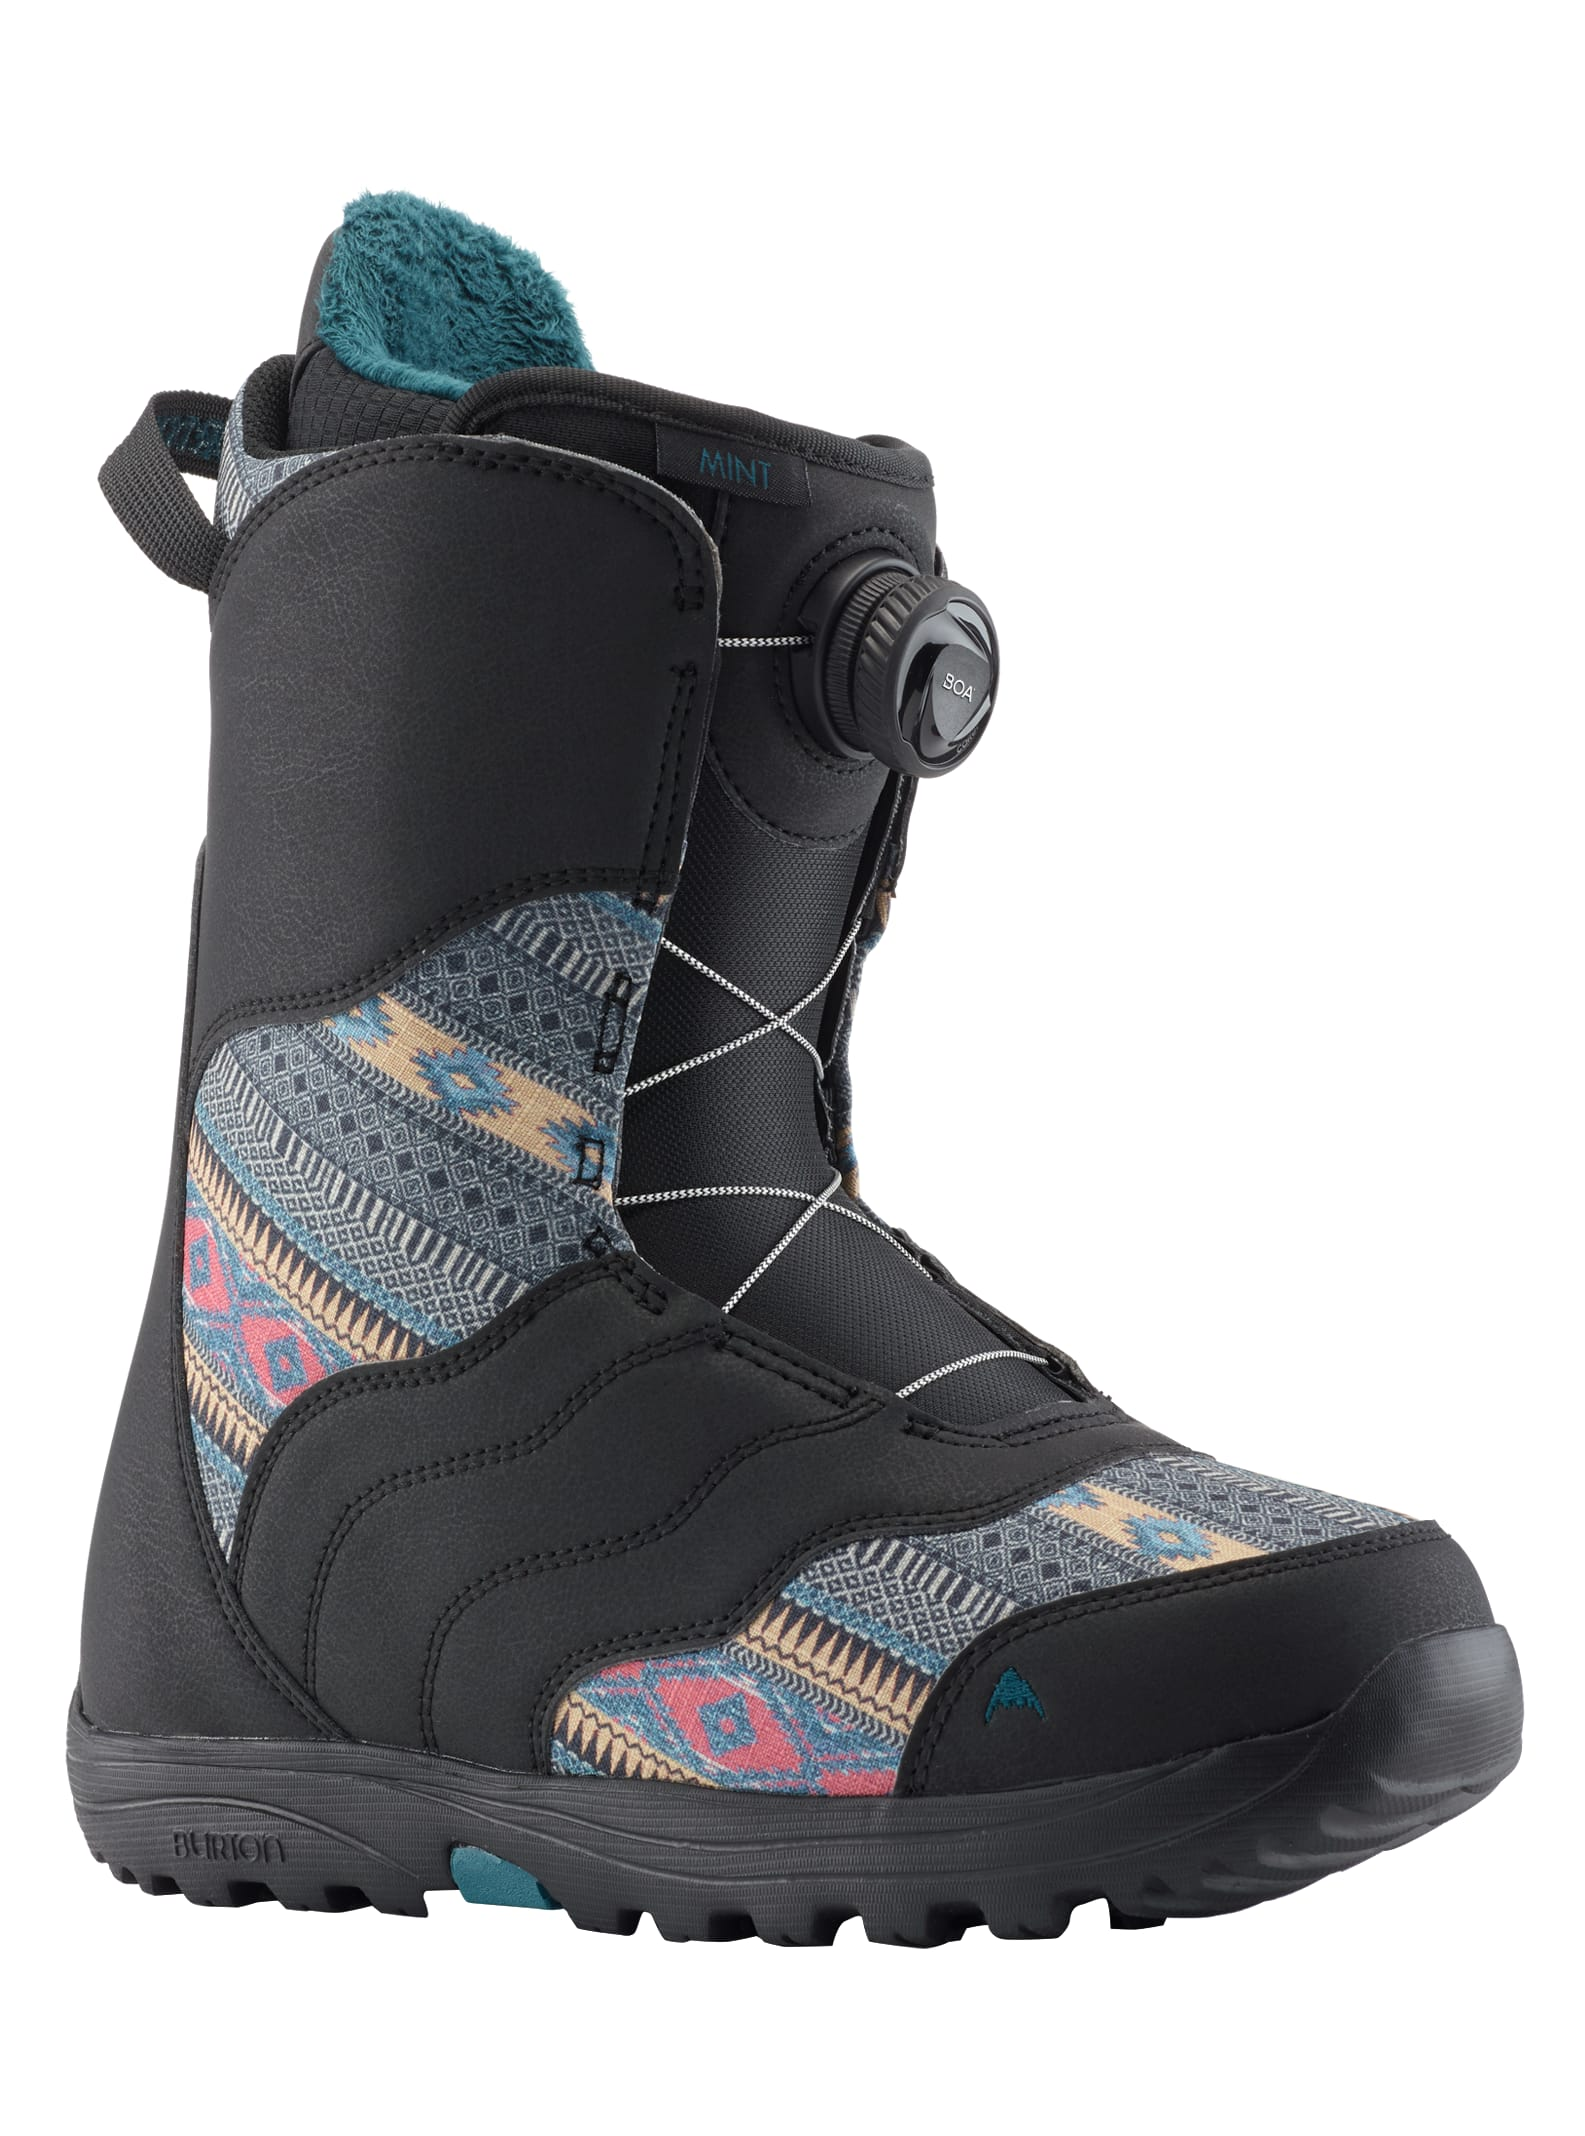 Women's Burton Mint Boa® Snowboard Boot | Winter 2019